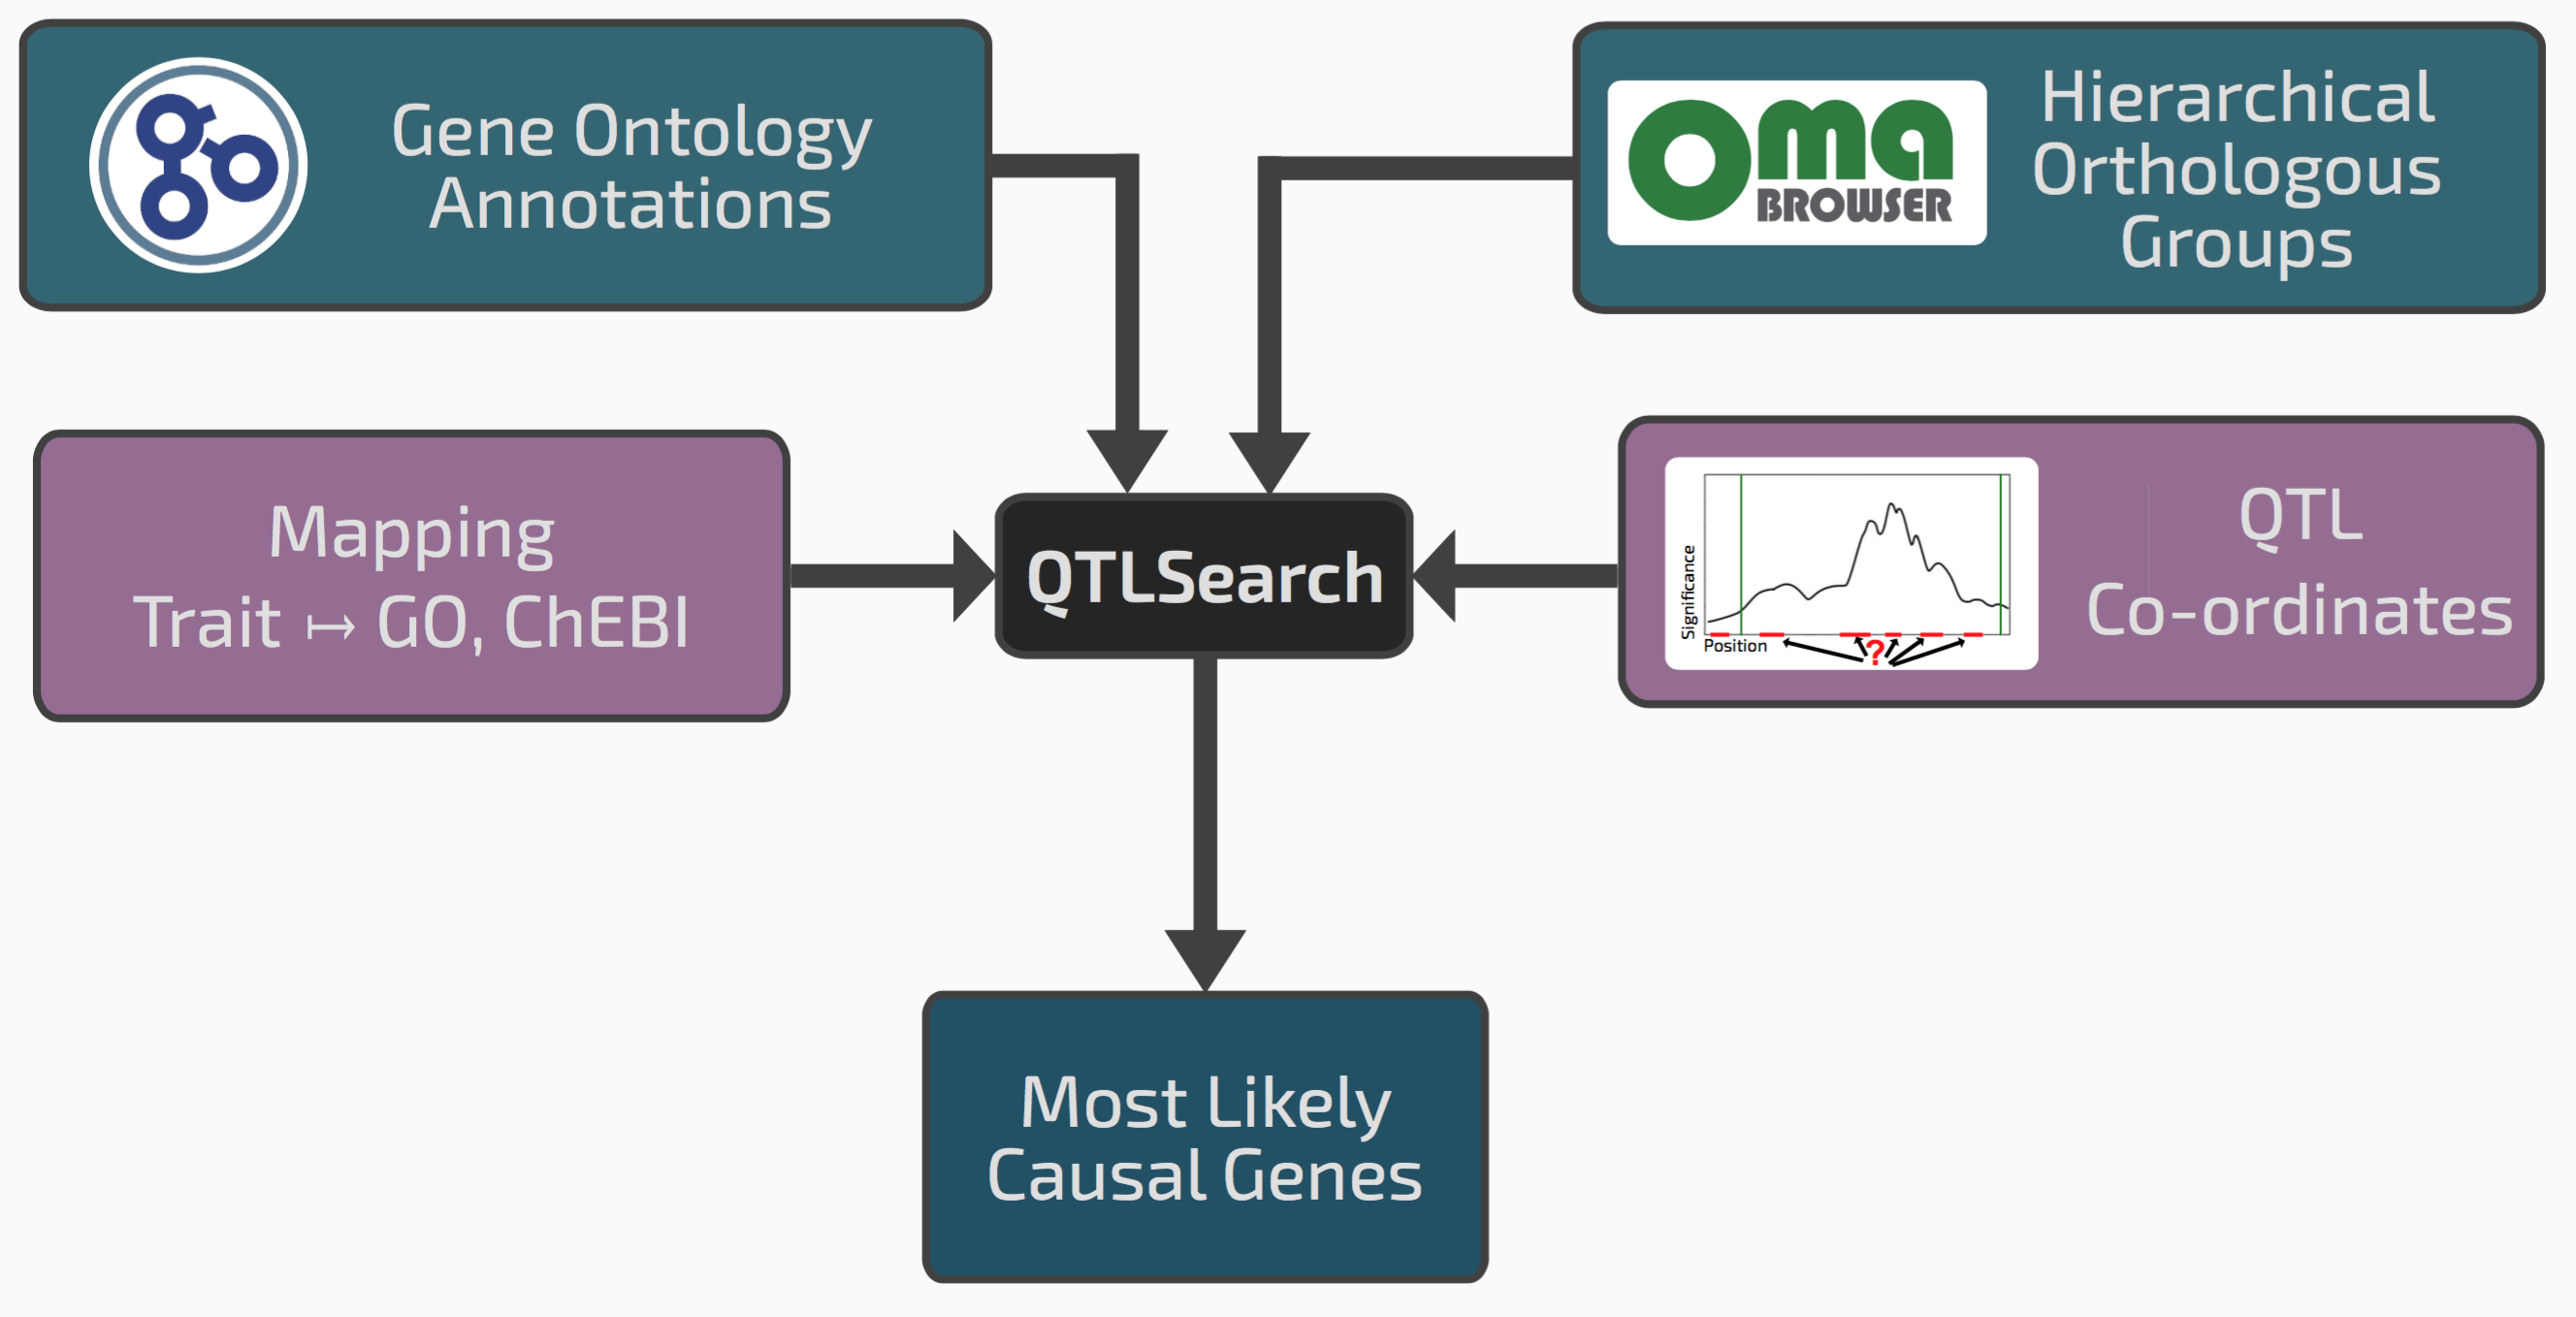 Conceptual overview of QTLsearch